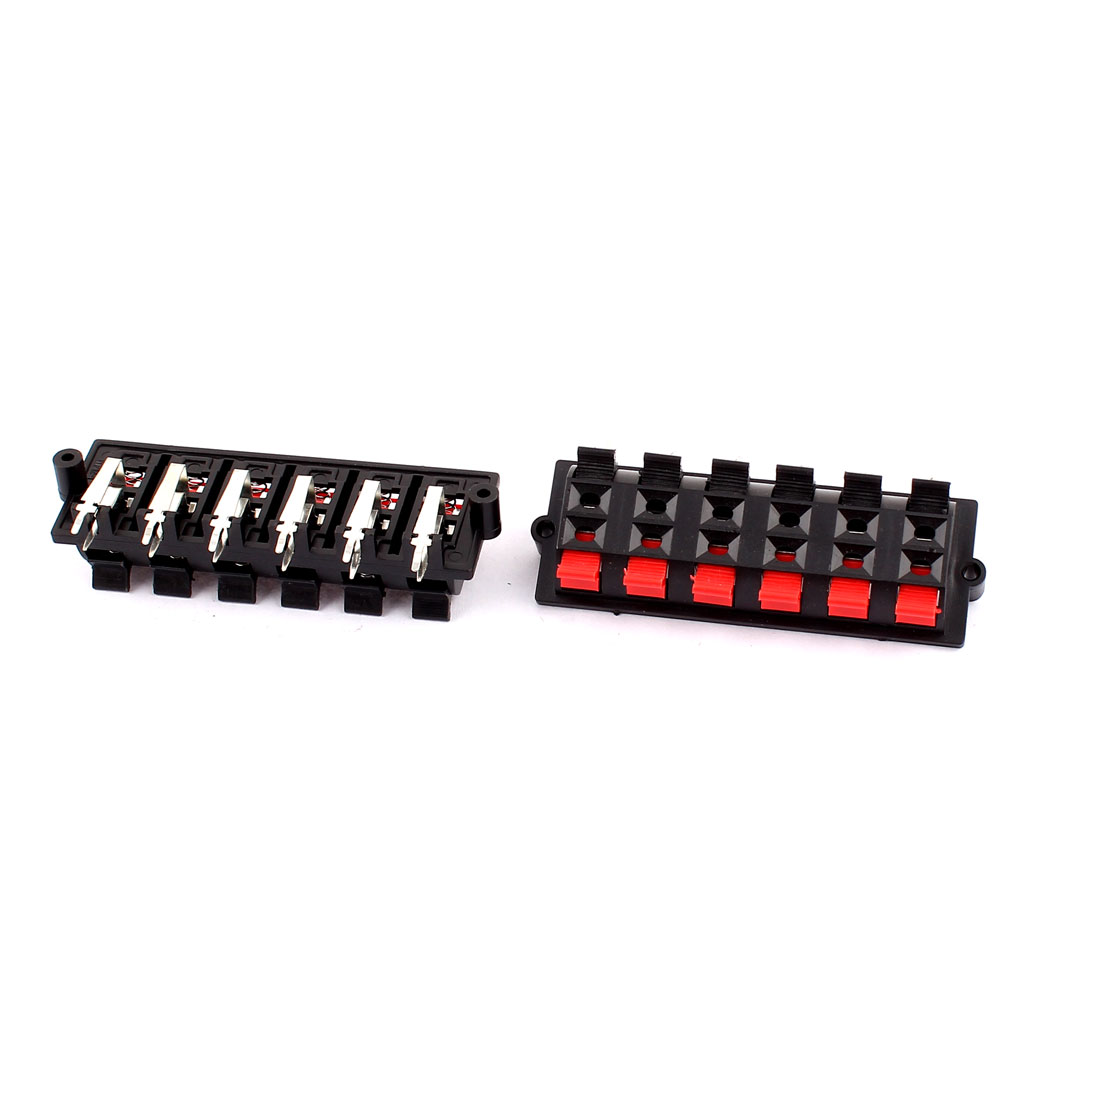 2pcs 12 Terminal Double Row 12 Position Spring Loaded Push in Type Speaker Socket Connector Board